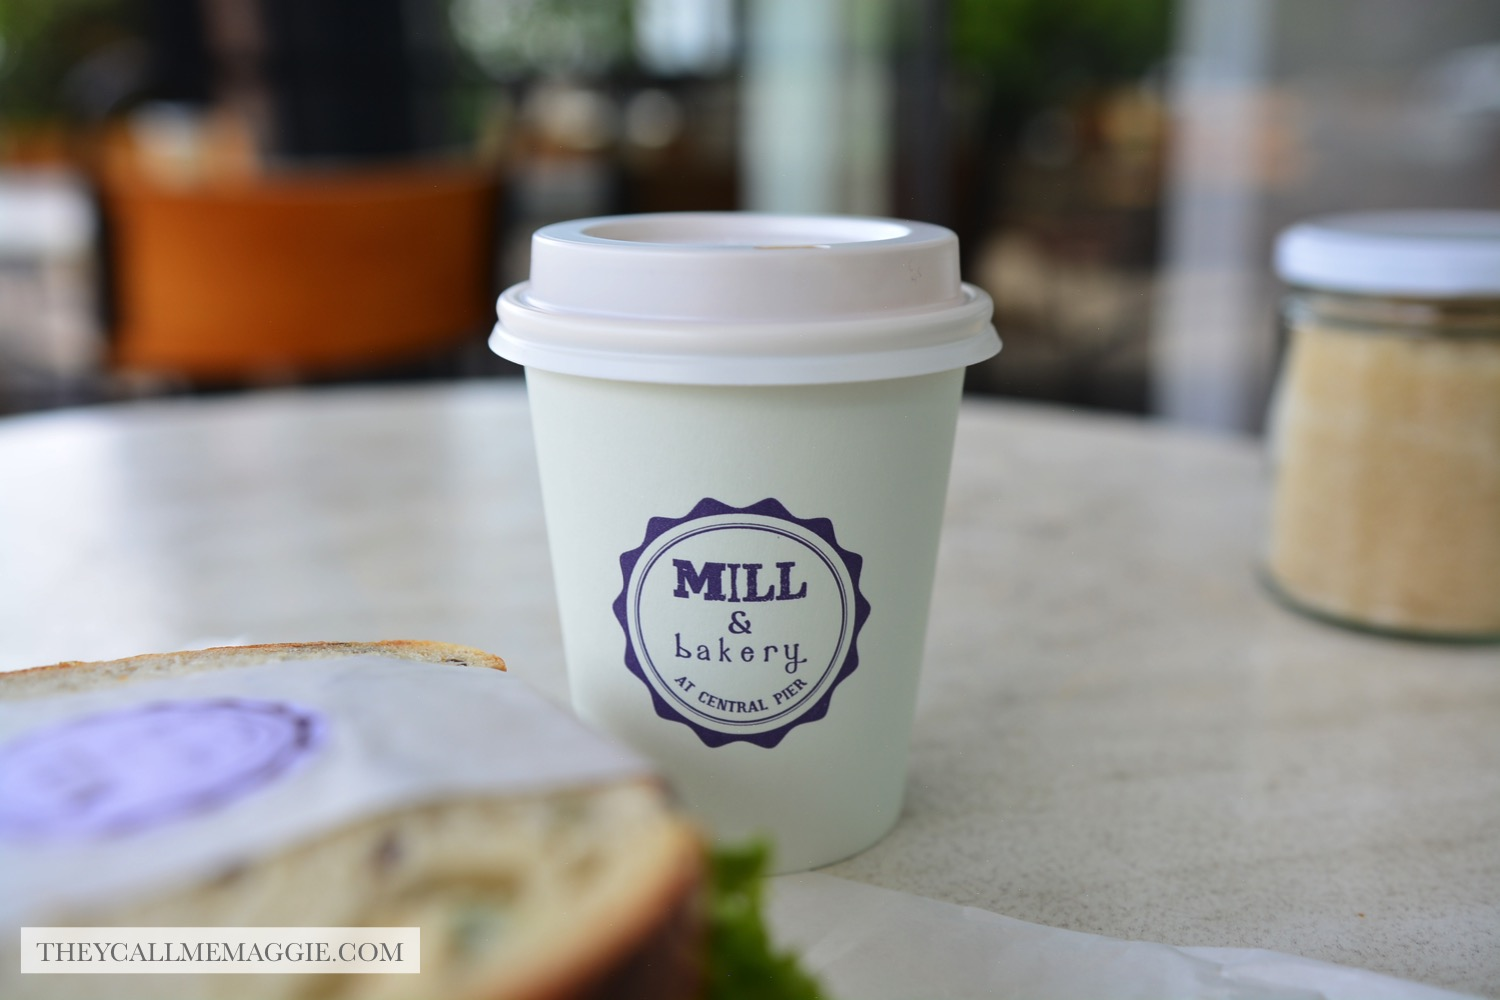 mill-and-bakery-coffee.jpg